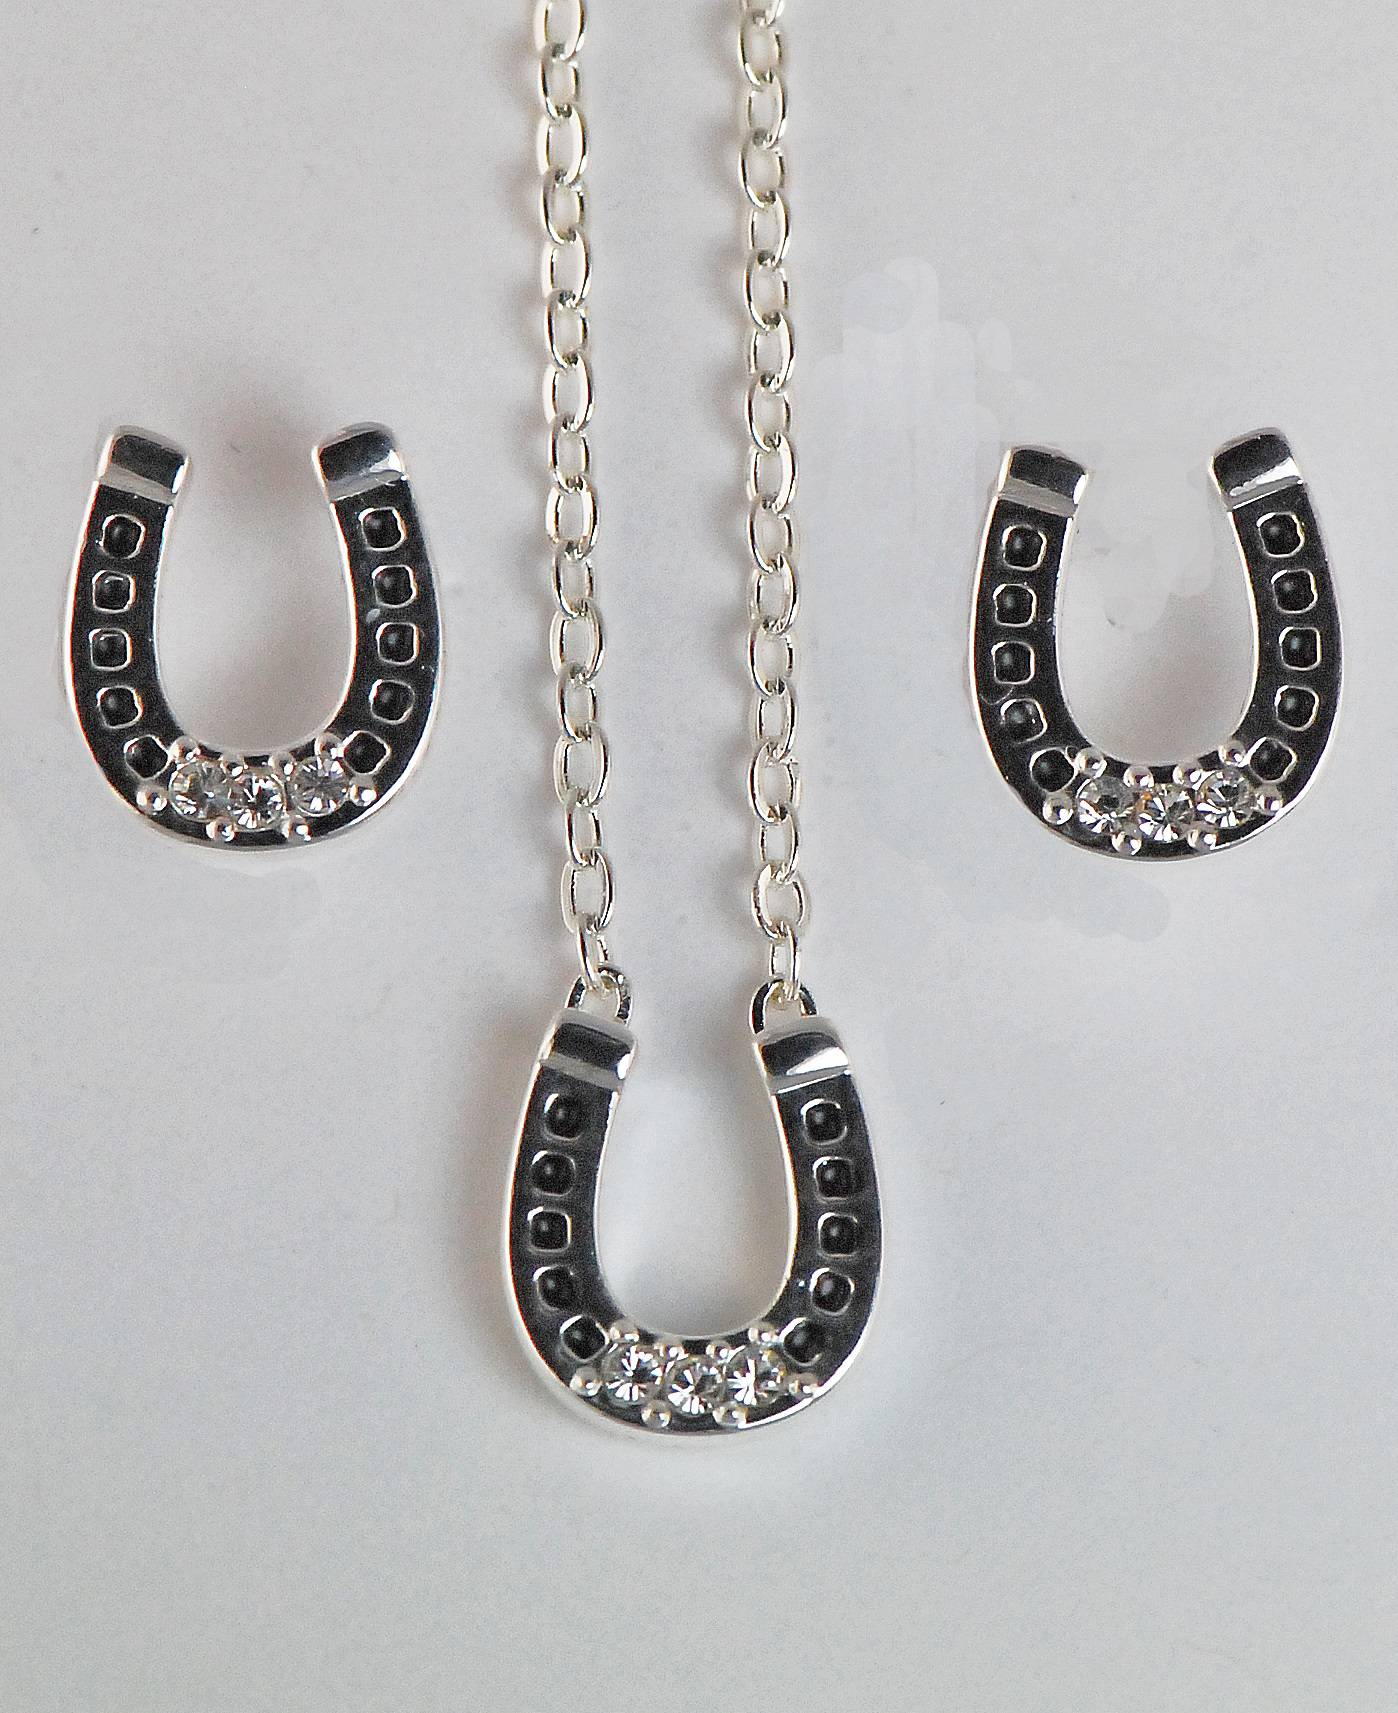 Western Edge Crystal Stones Horseshoe Earrings and Necklace Set